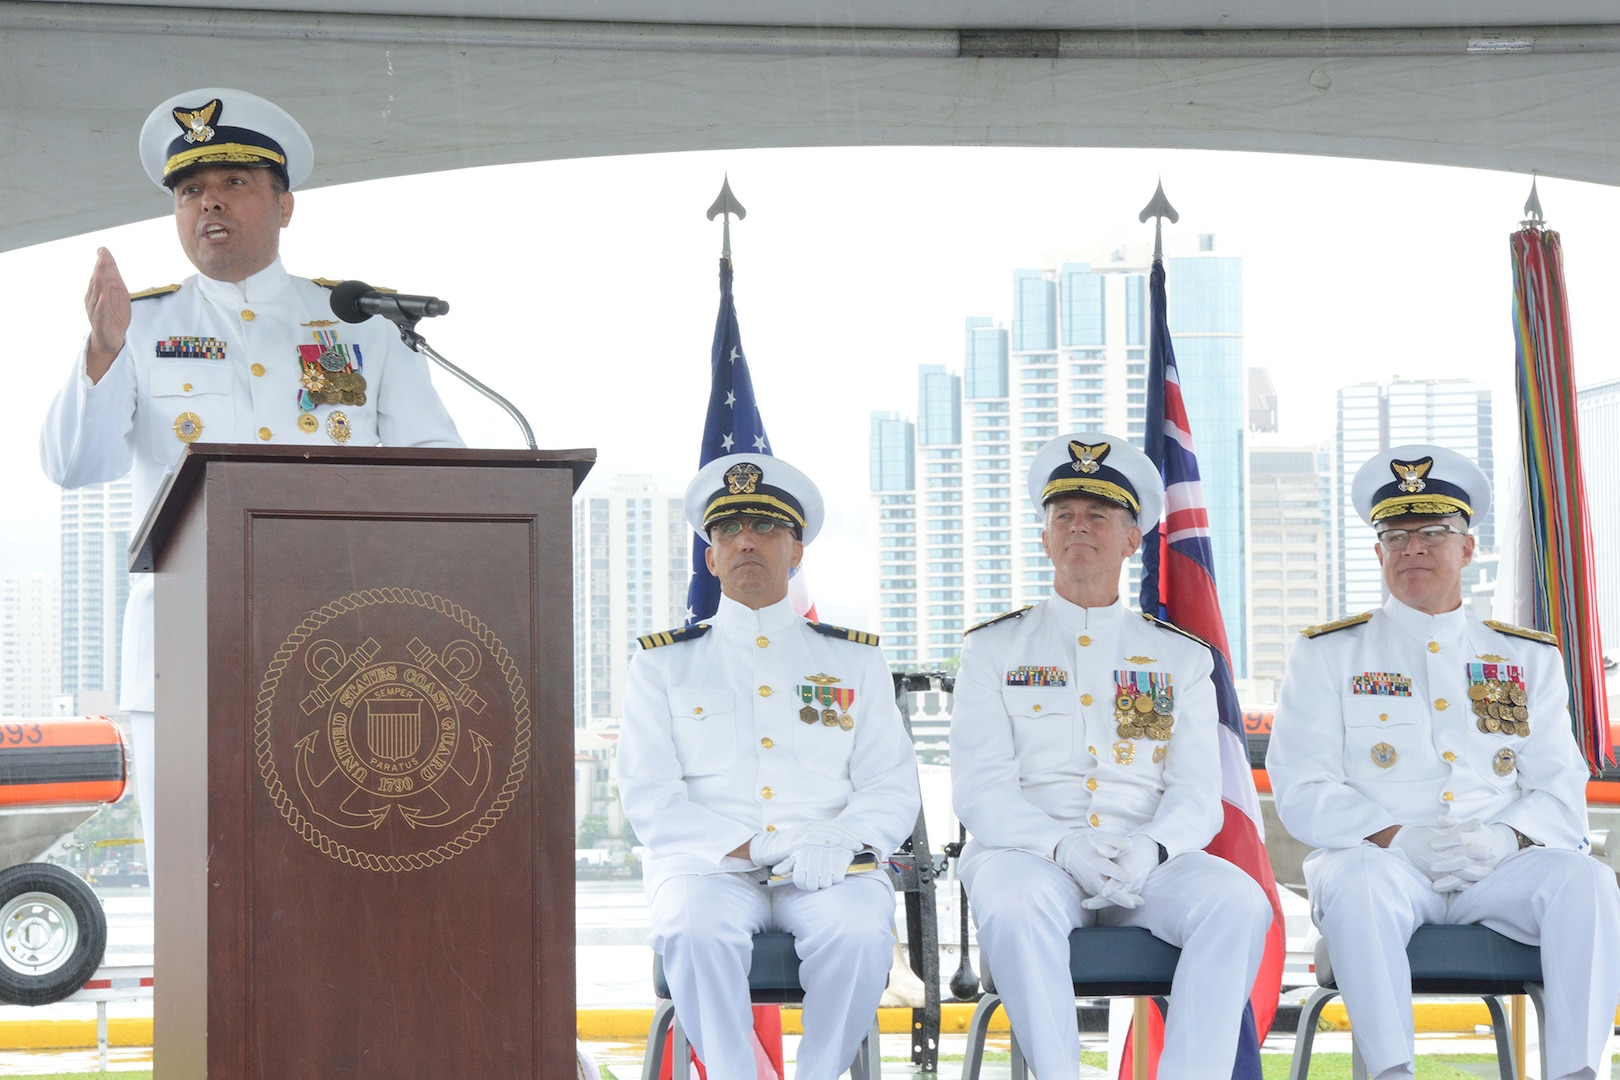 Coast Guard welcomes new admiral to lead 14th District